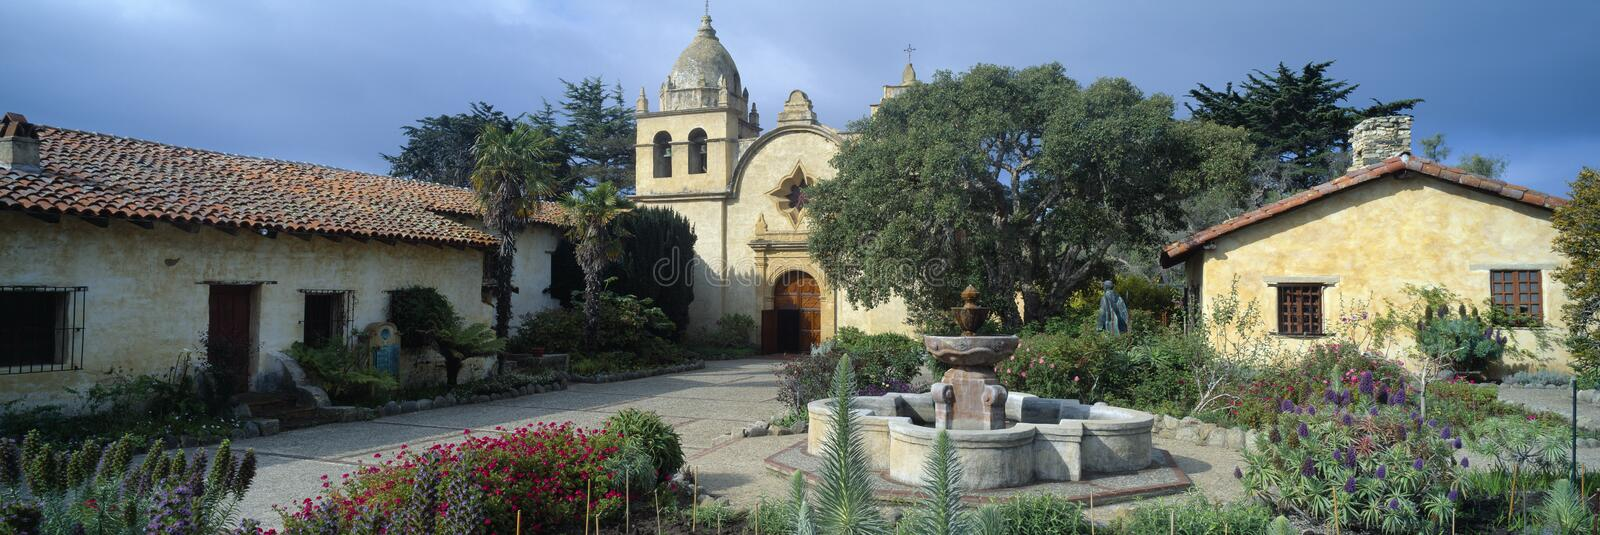 Mission San Carlos Borromeo de Carmel photo libre de droits